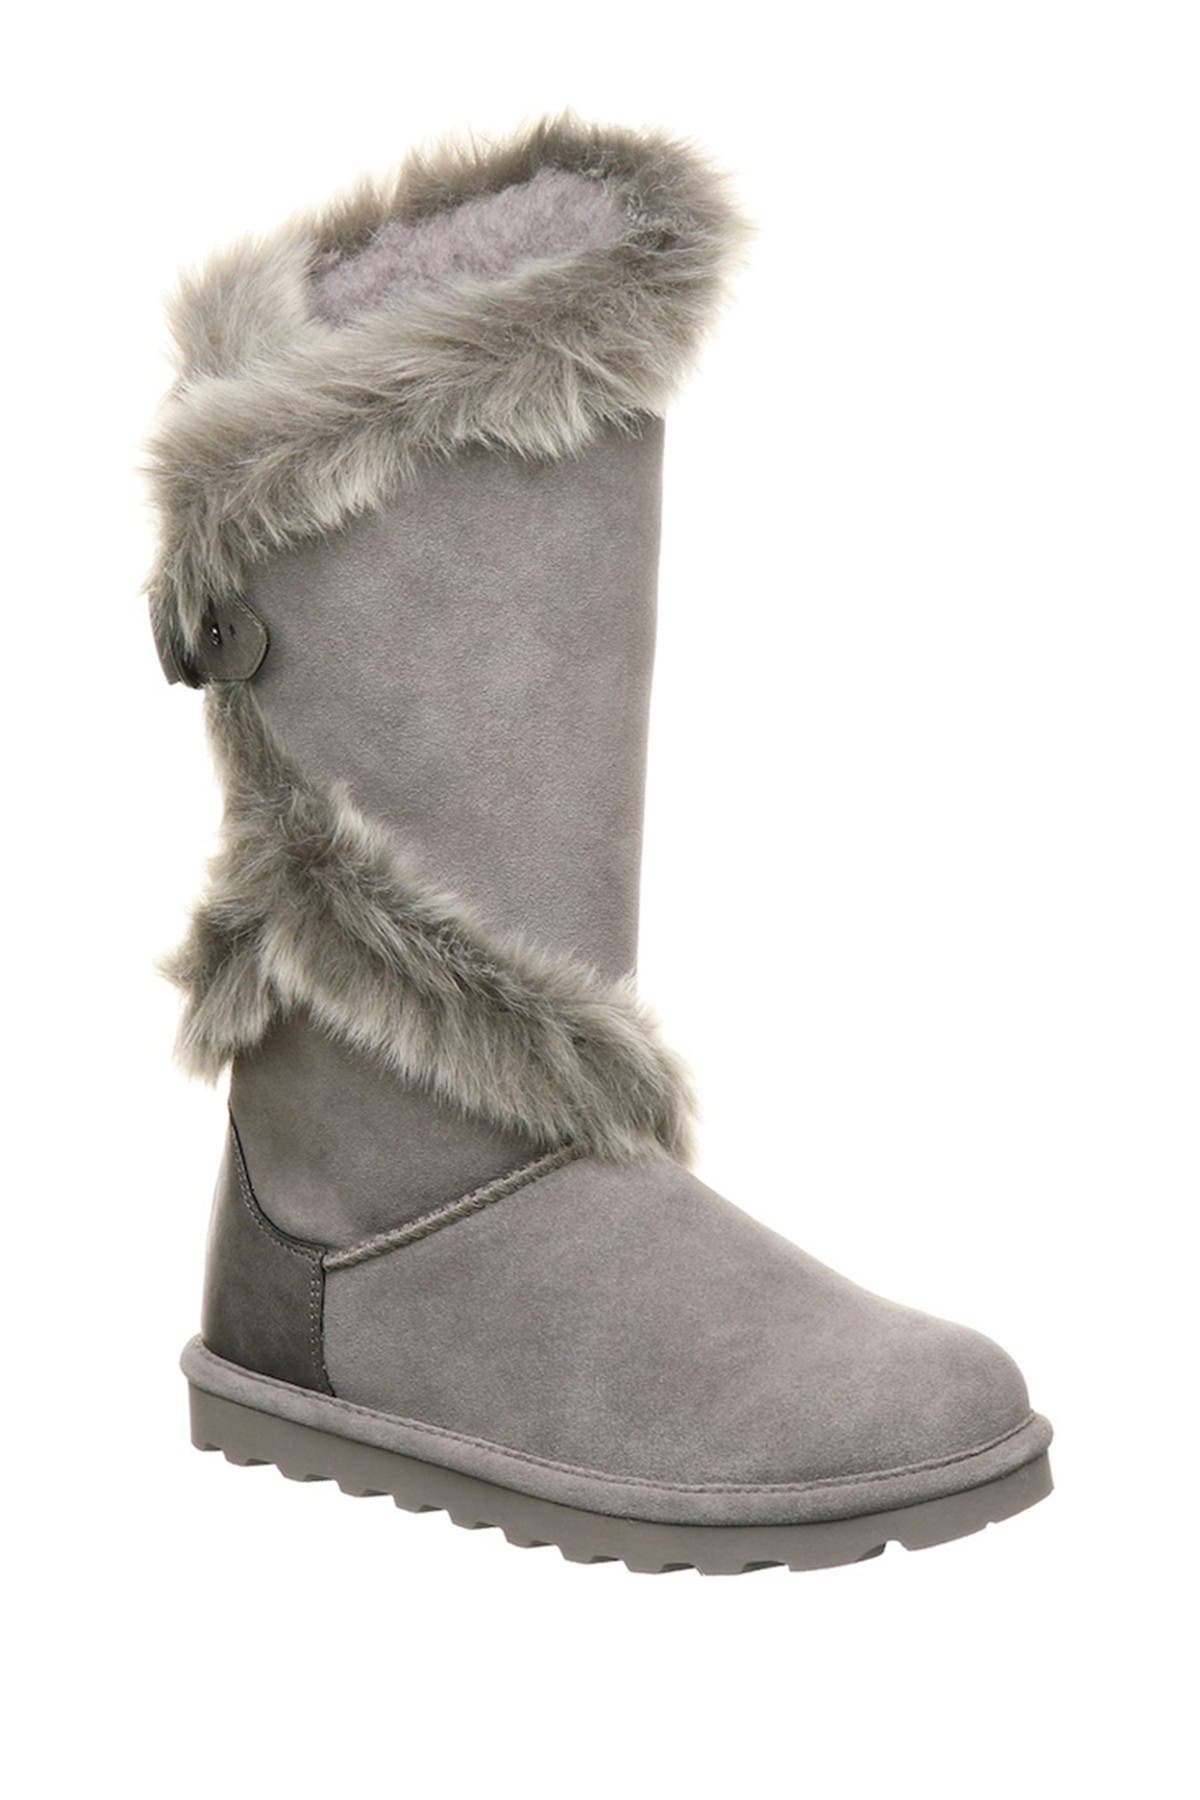 Image of BEARPAW Sheilah Suede Tall Faux Fur Boot